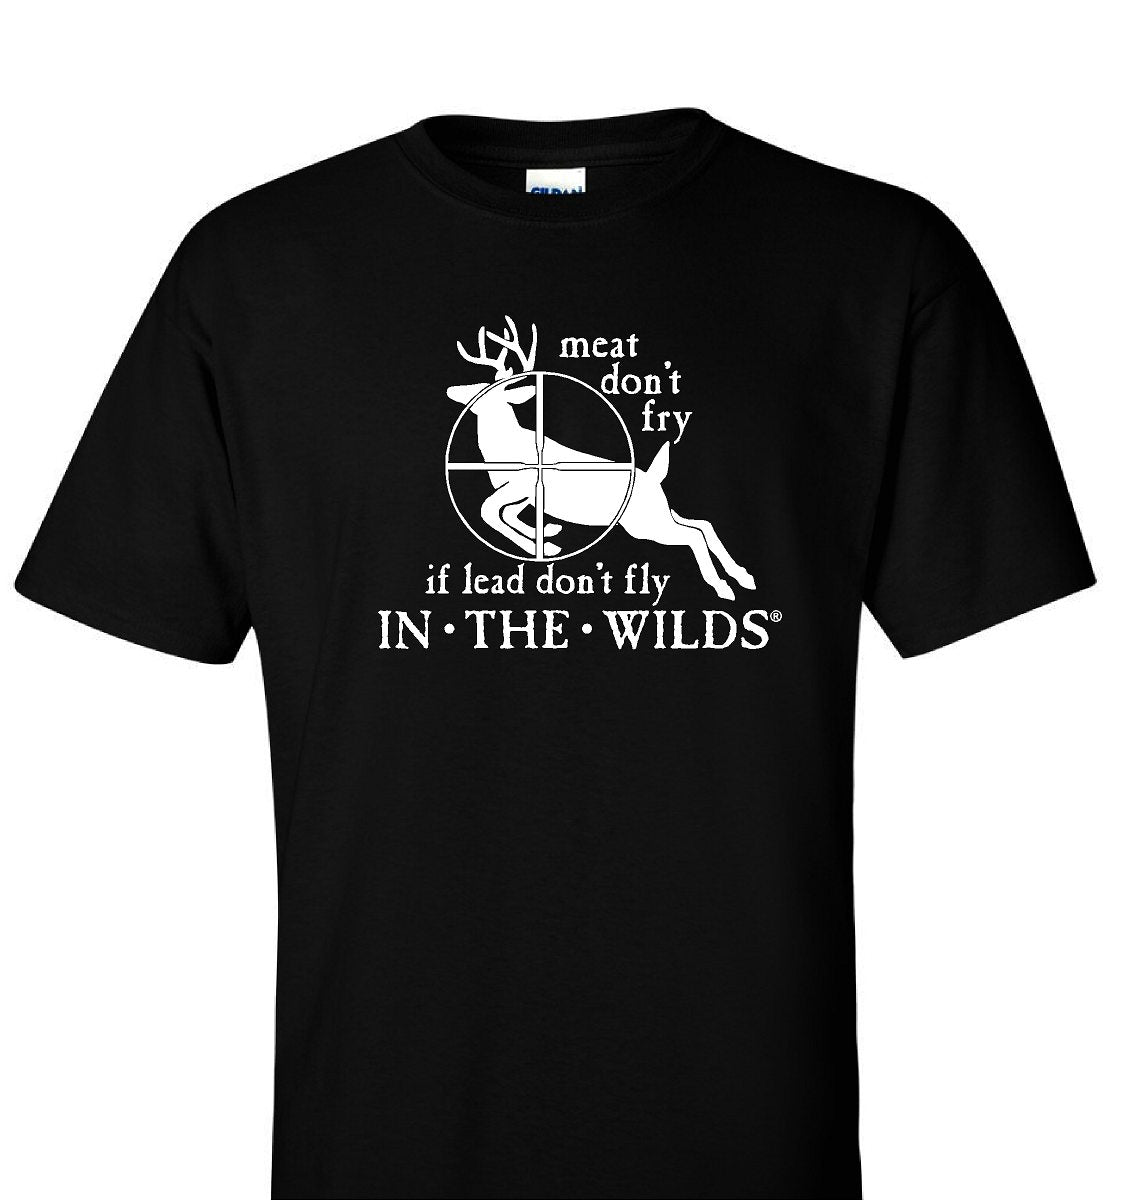 IN THE WILDS® T-Shirt • meat don't fry if lead don't fly